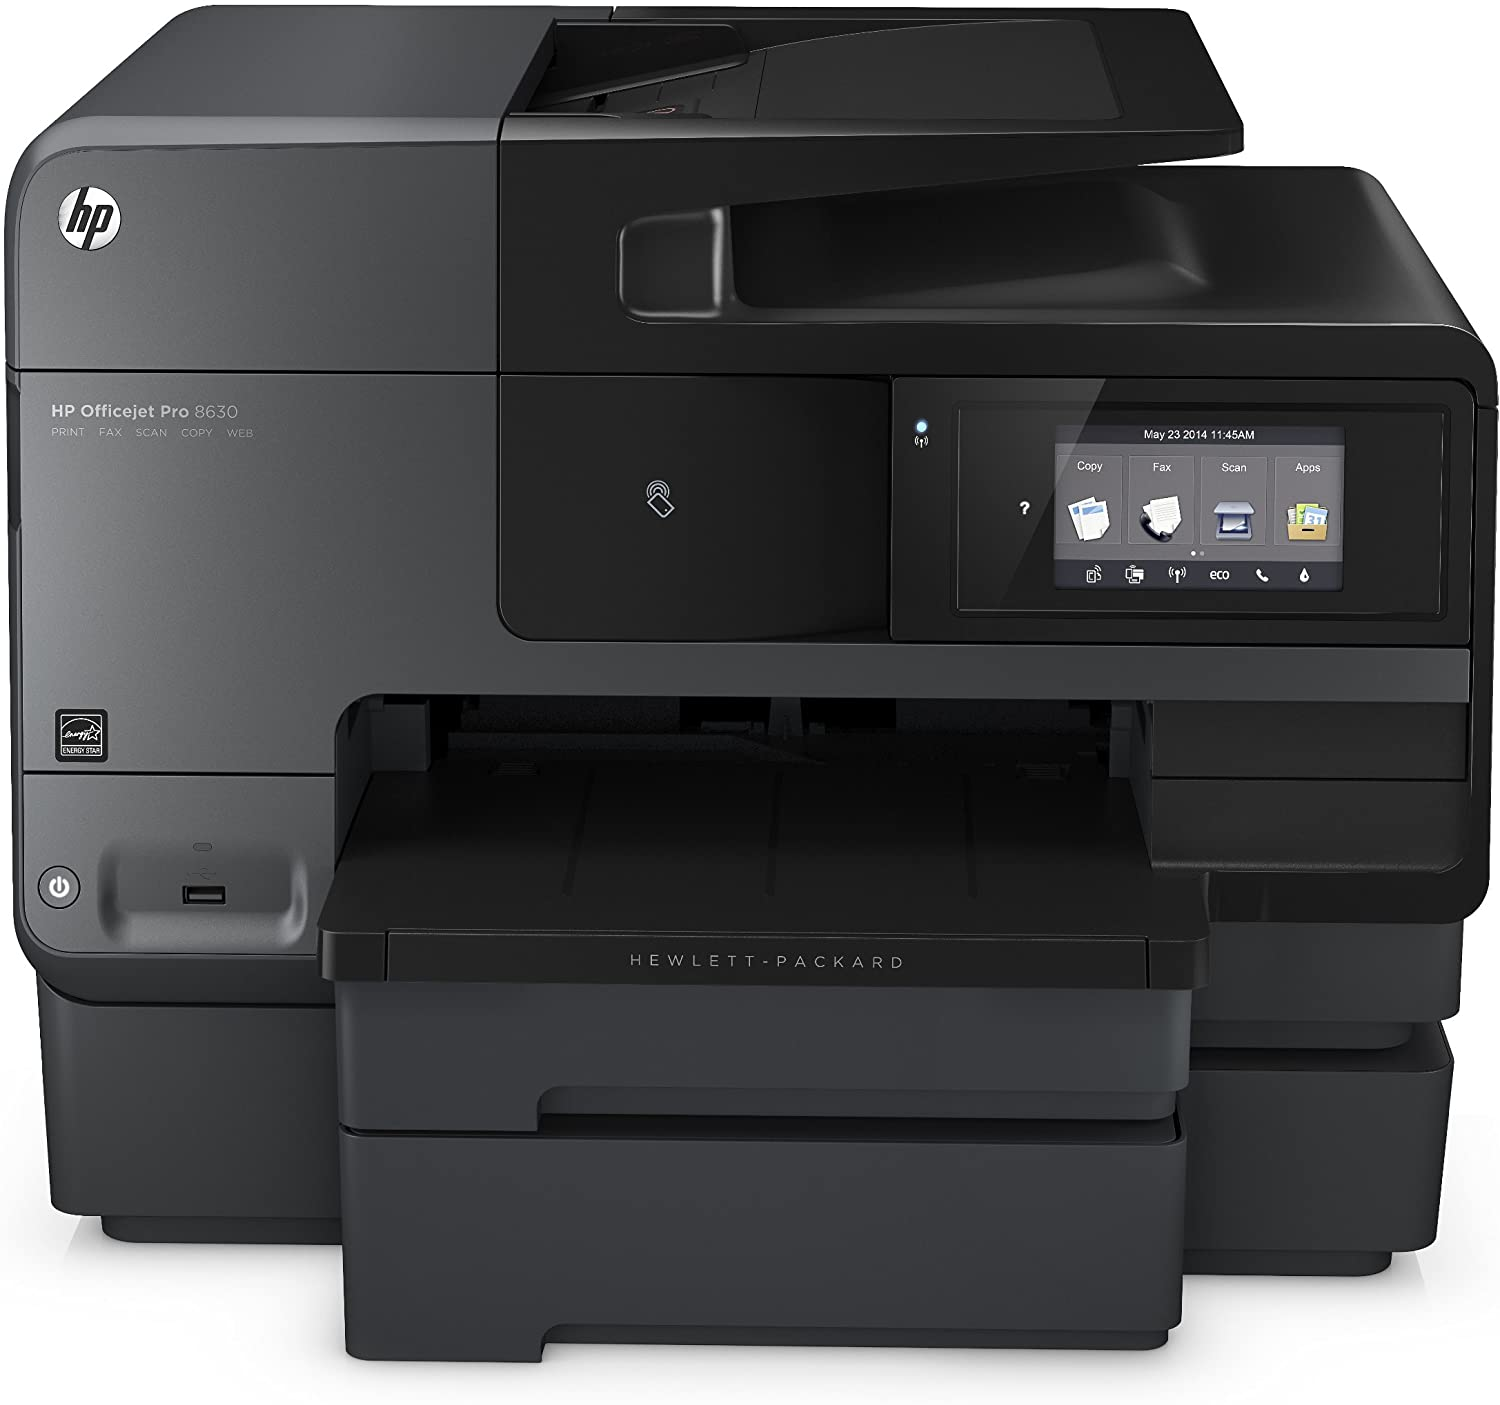 HP OfficeJet Pro 8630 All-in-One Wireless Printer with Mobile Printing, HP Instant Ink or Amazon Dash replenishment ready (A7F66A)